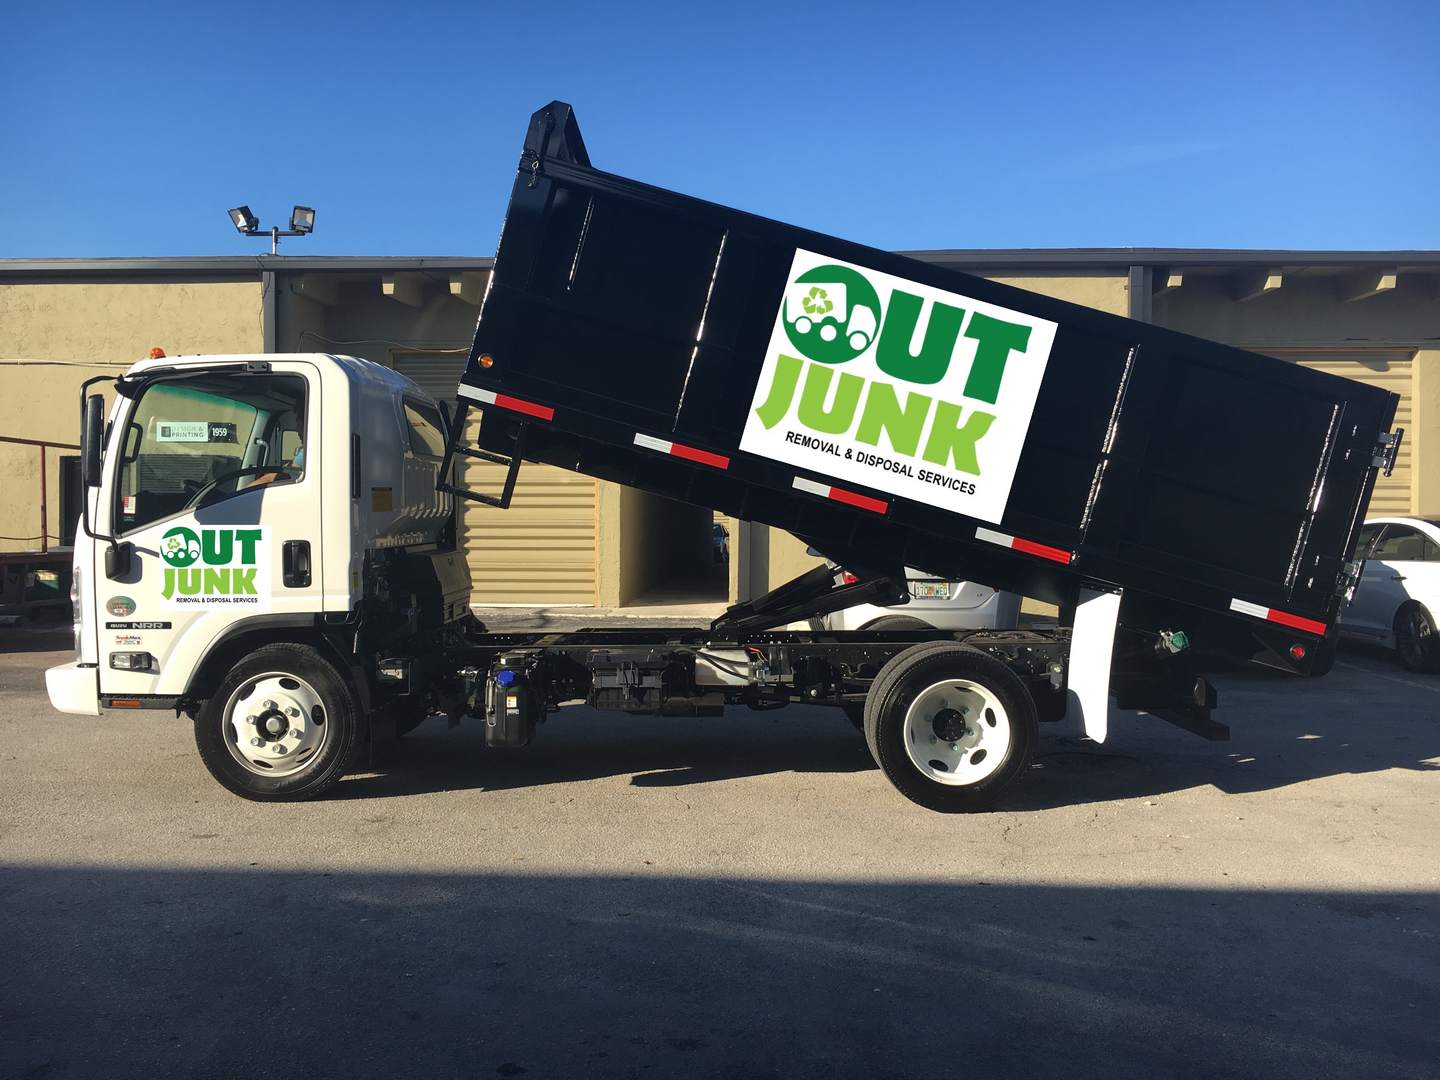 Junk Removal Services - OUT JUNK INC